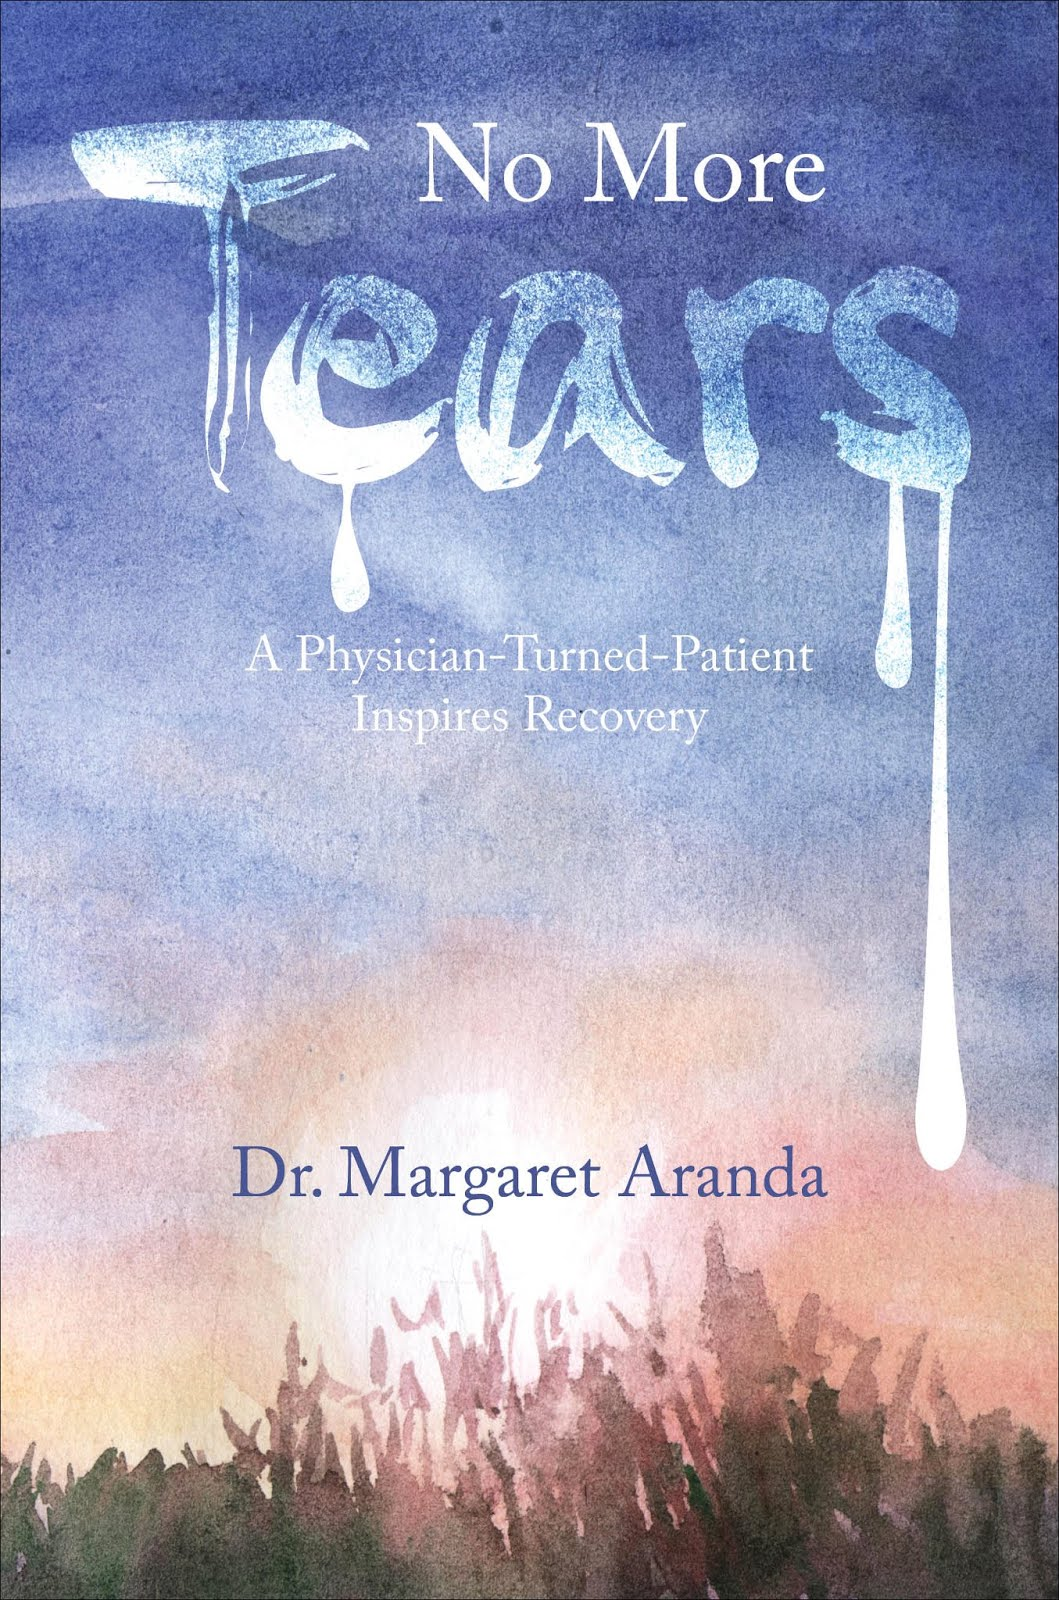 DR MARGARET ARANDA'S No More Tears